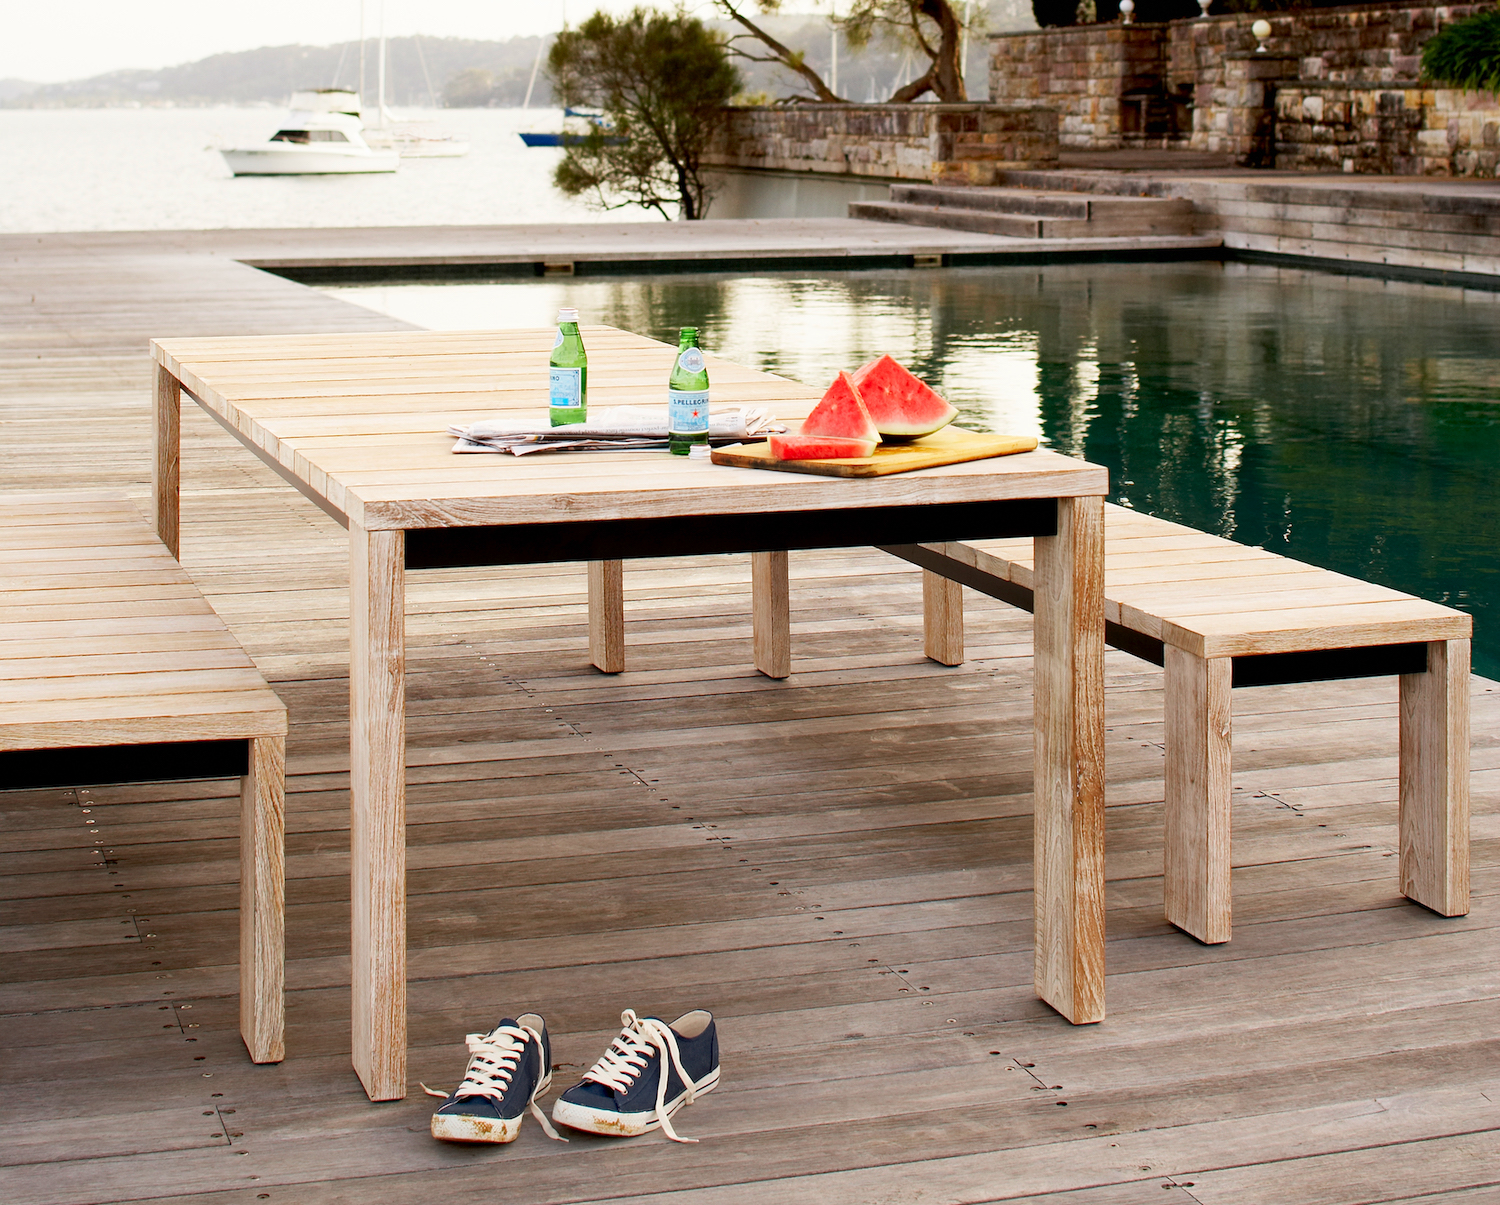 Our Jan Juc® dining setting provides easy, casual poolside living